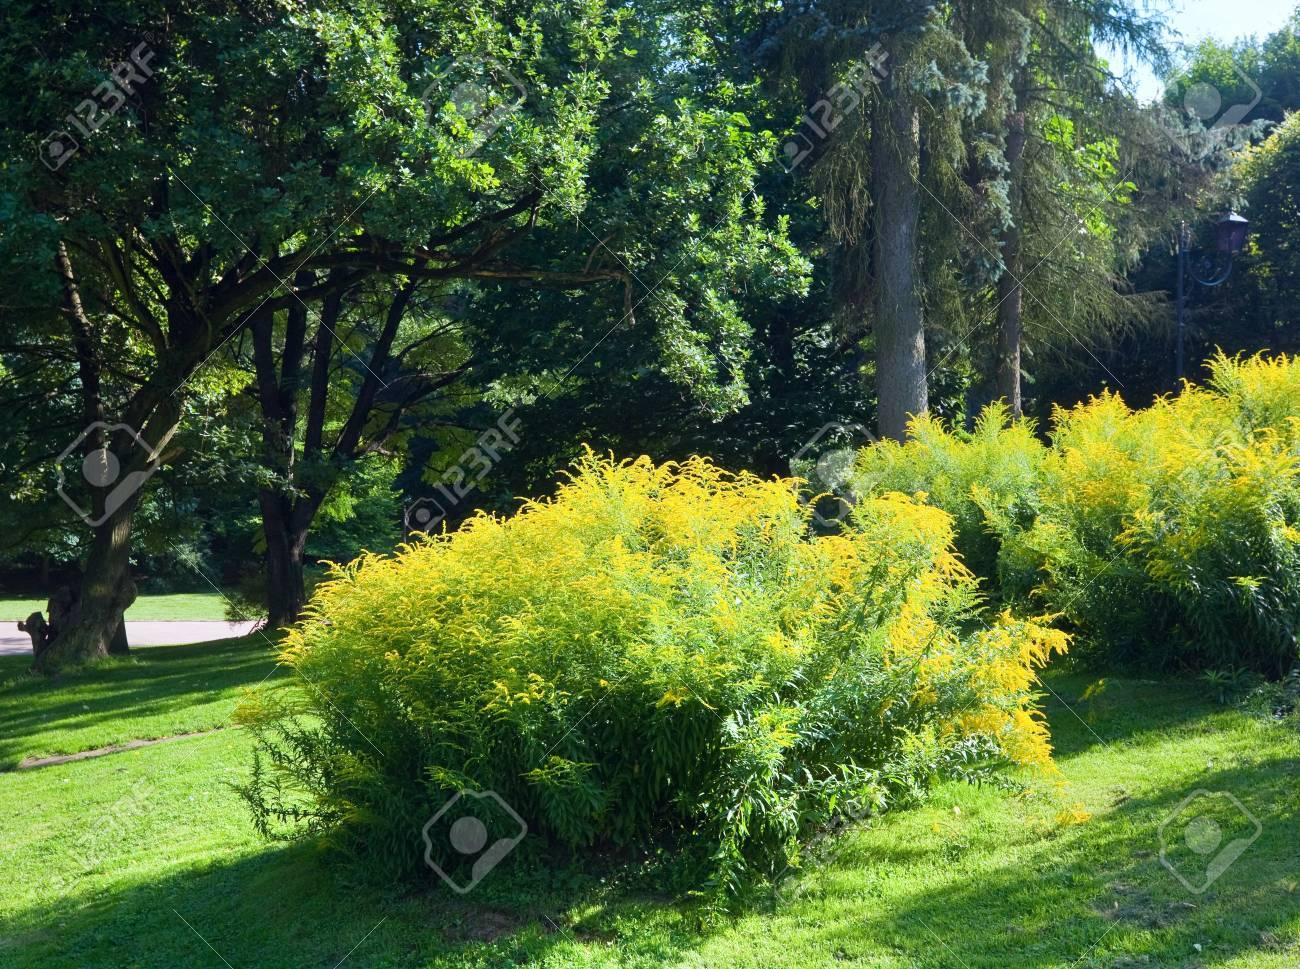 Blossoming Bush With Yellow Flowers In Summer City Park Stock Photo